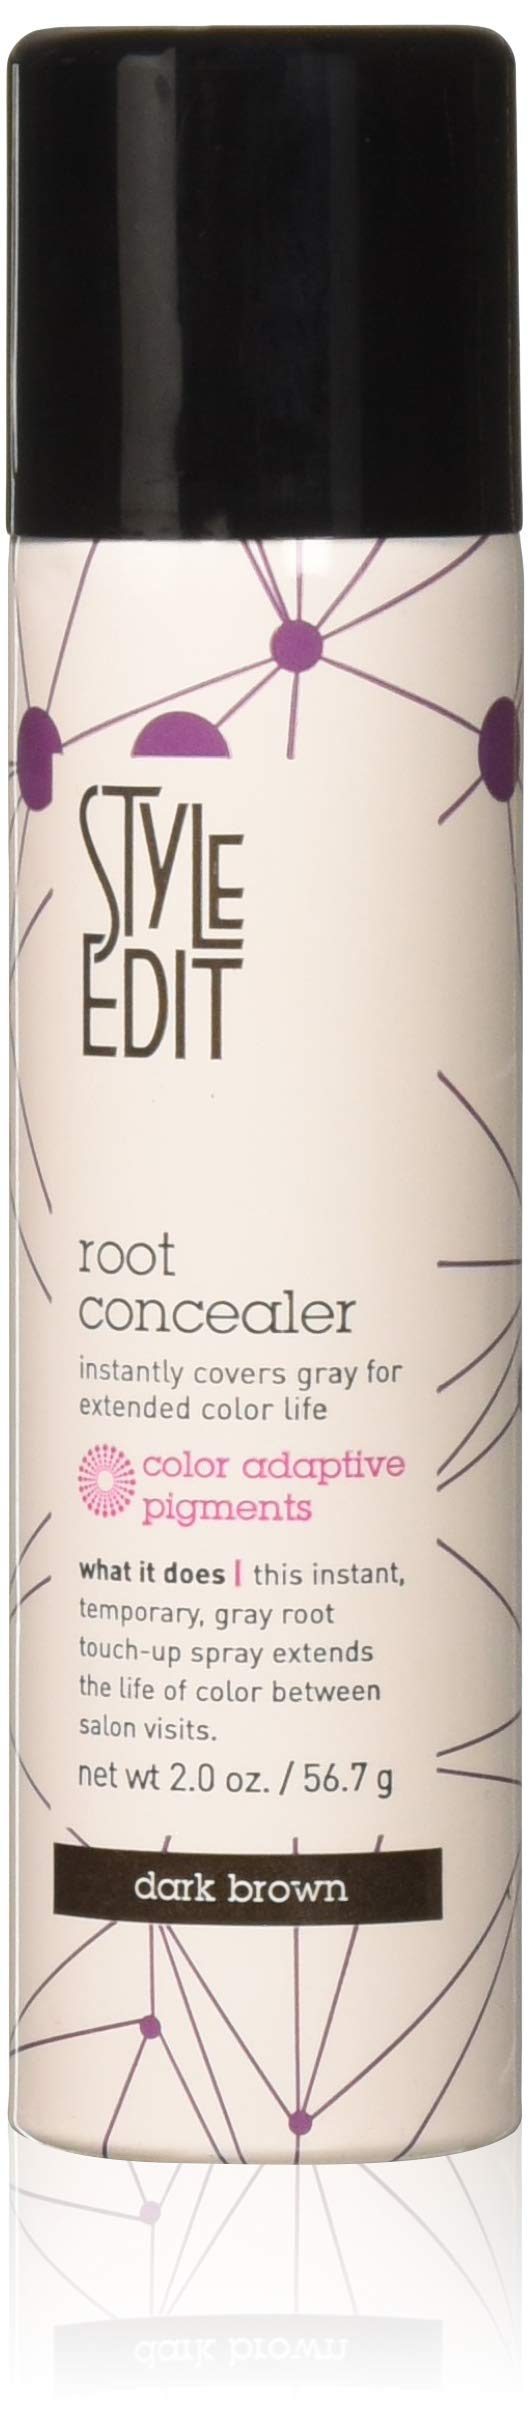 Style Edit Root Concealer, Dark Brown, 2 oz.